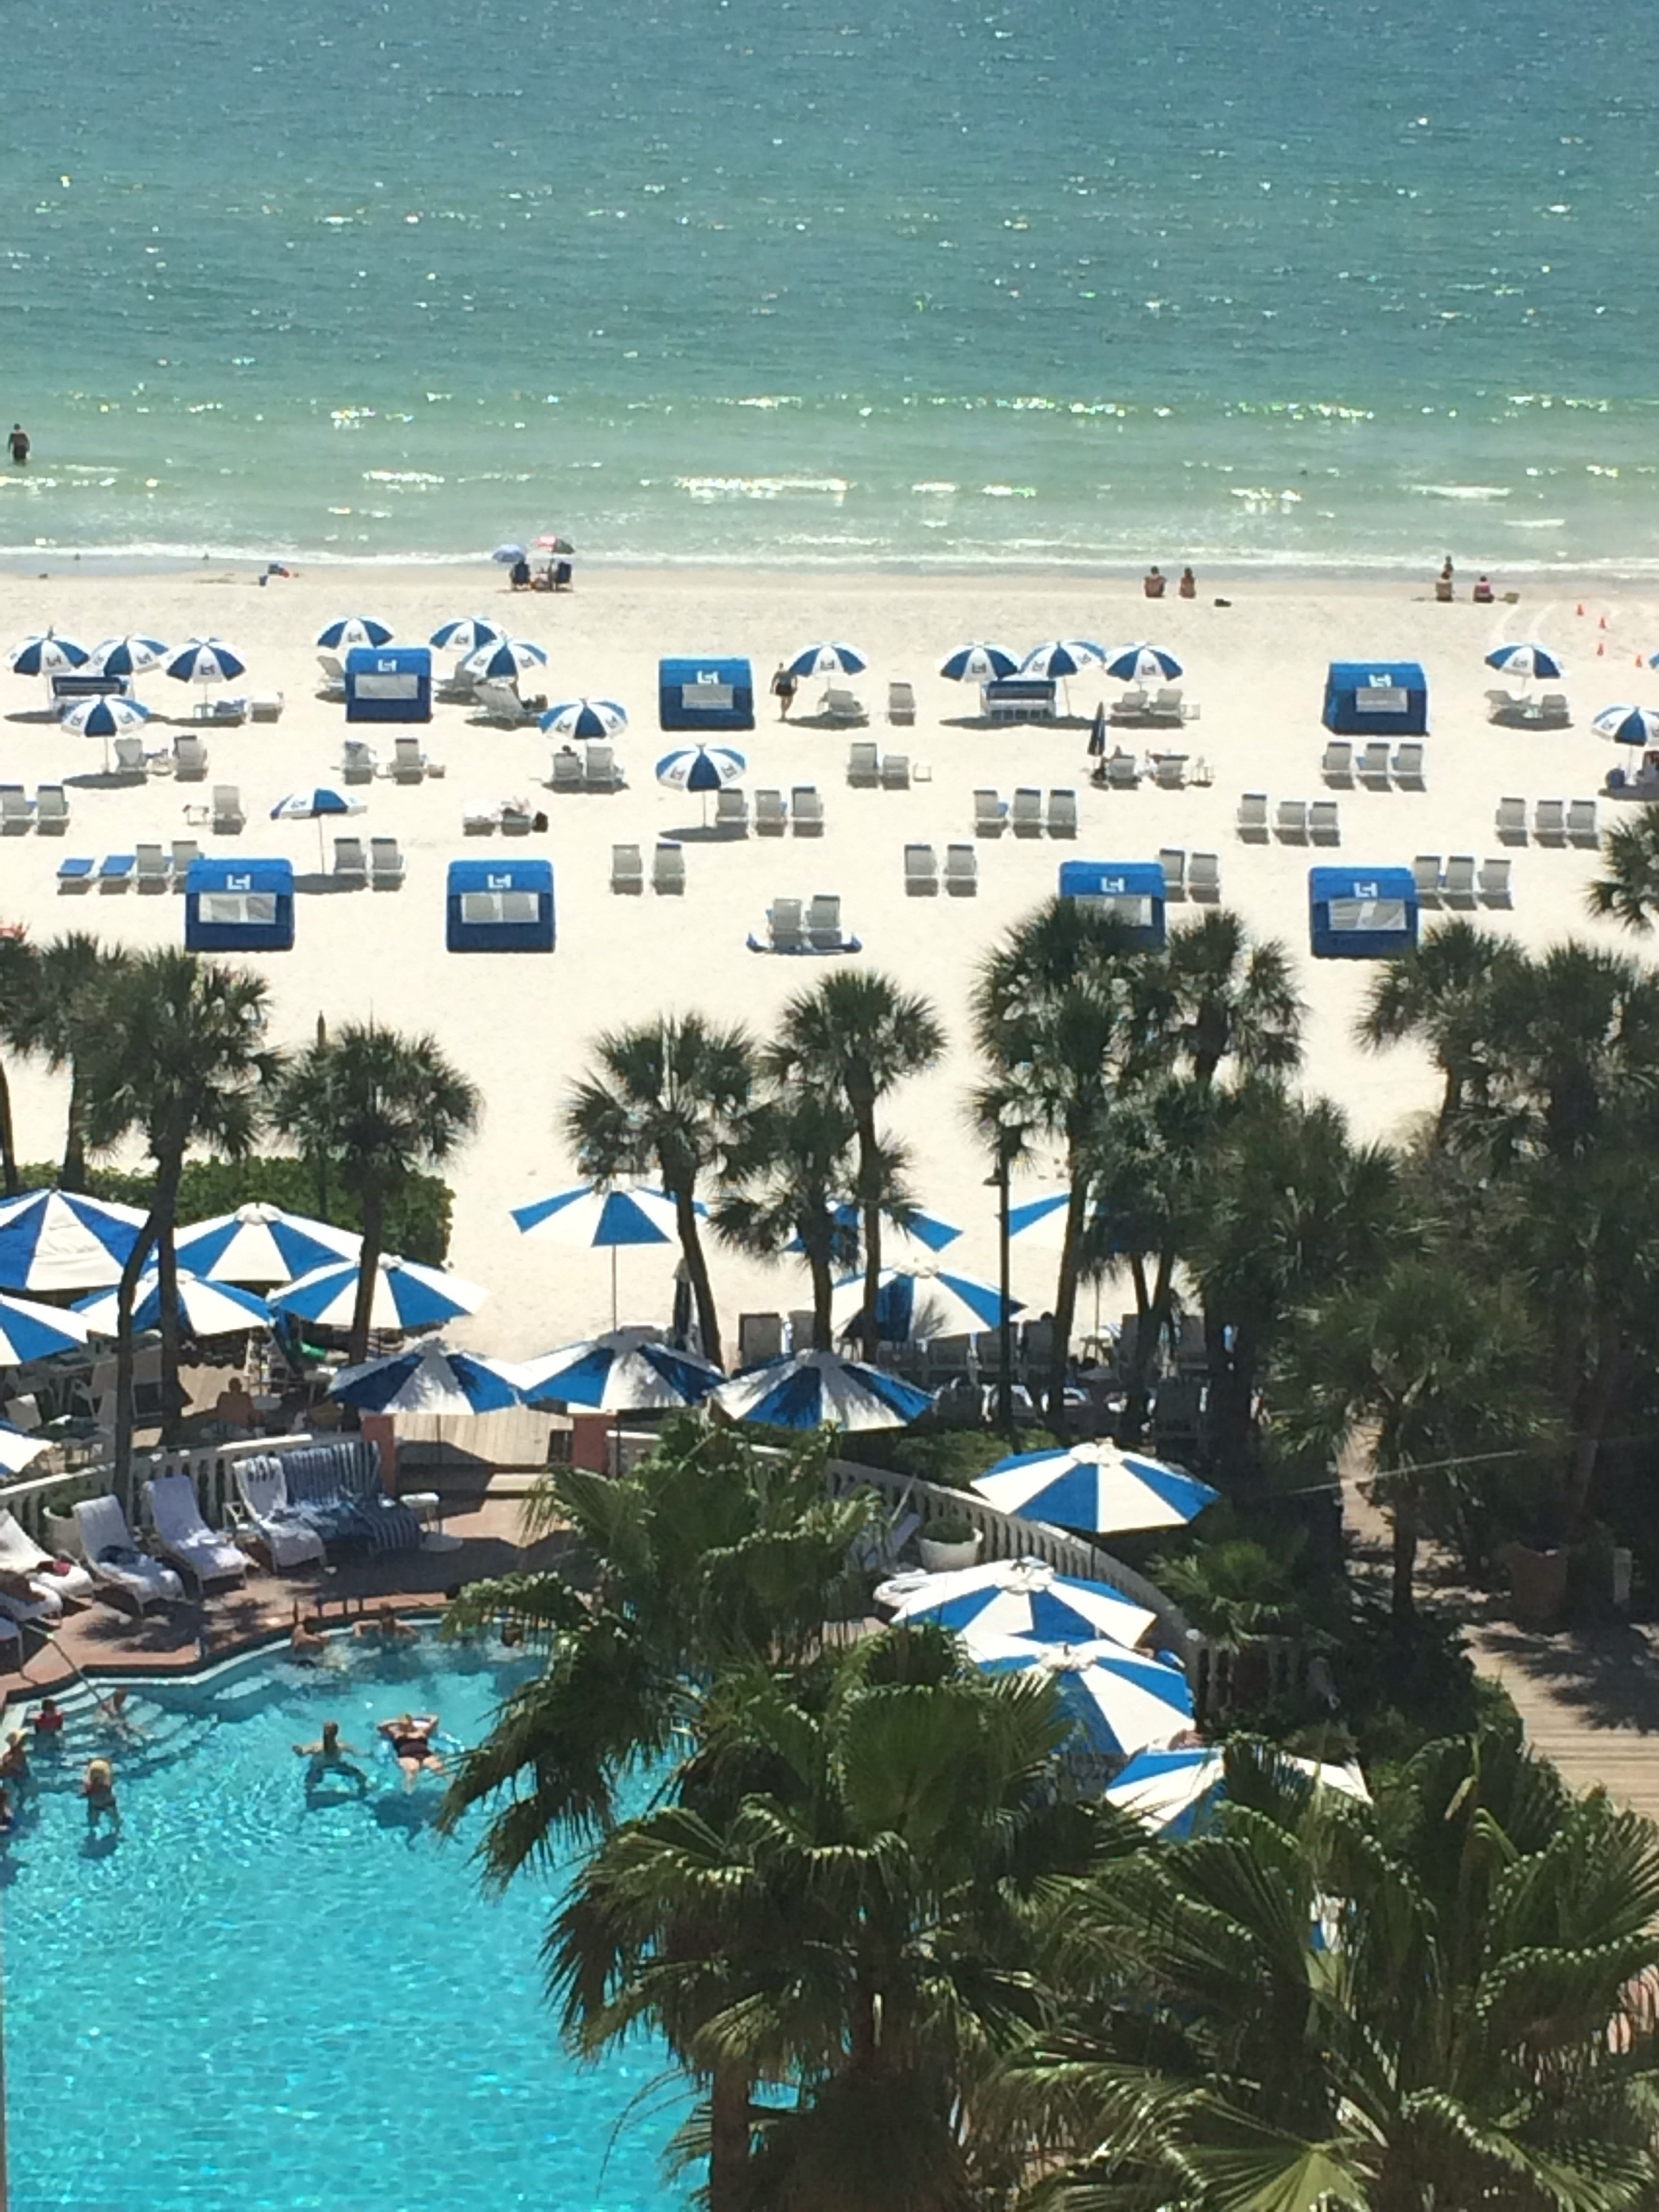 10 Reasons To Add A Stay At The Loews Don Cesar Resort In